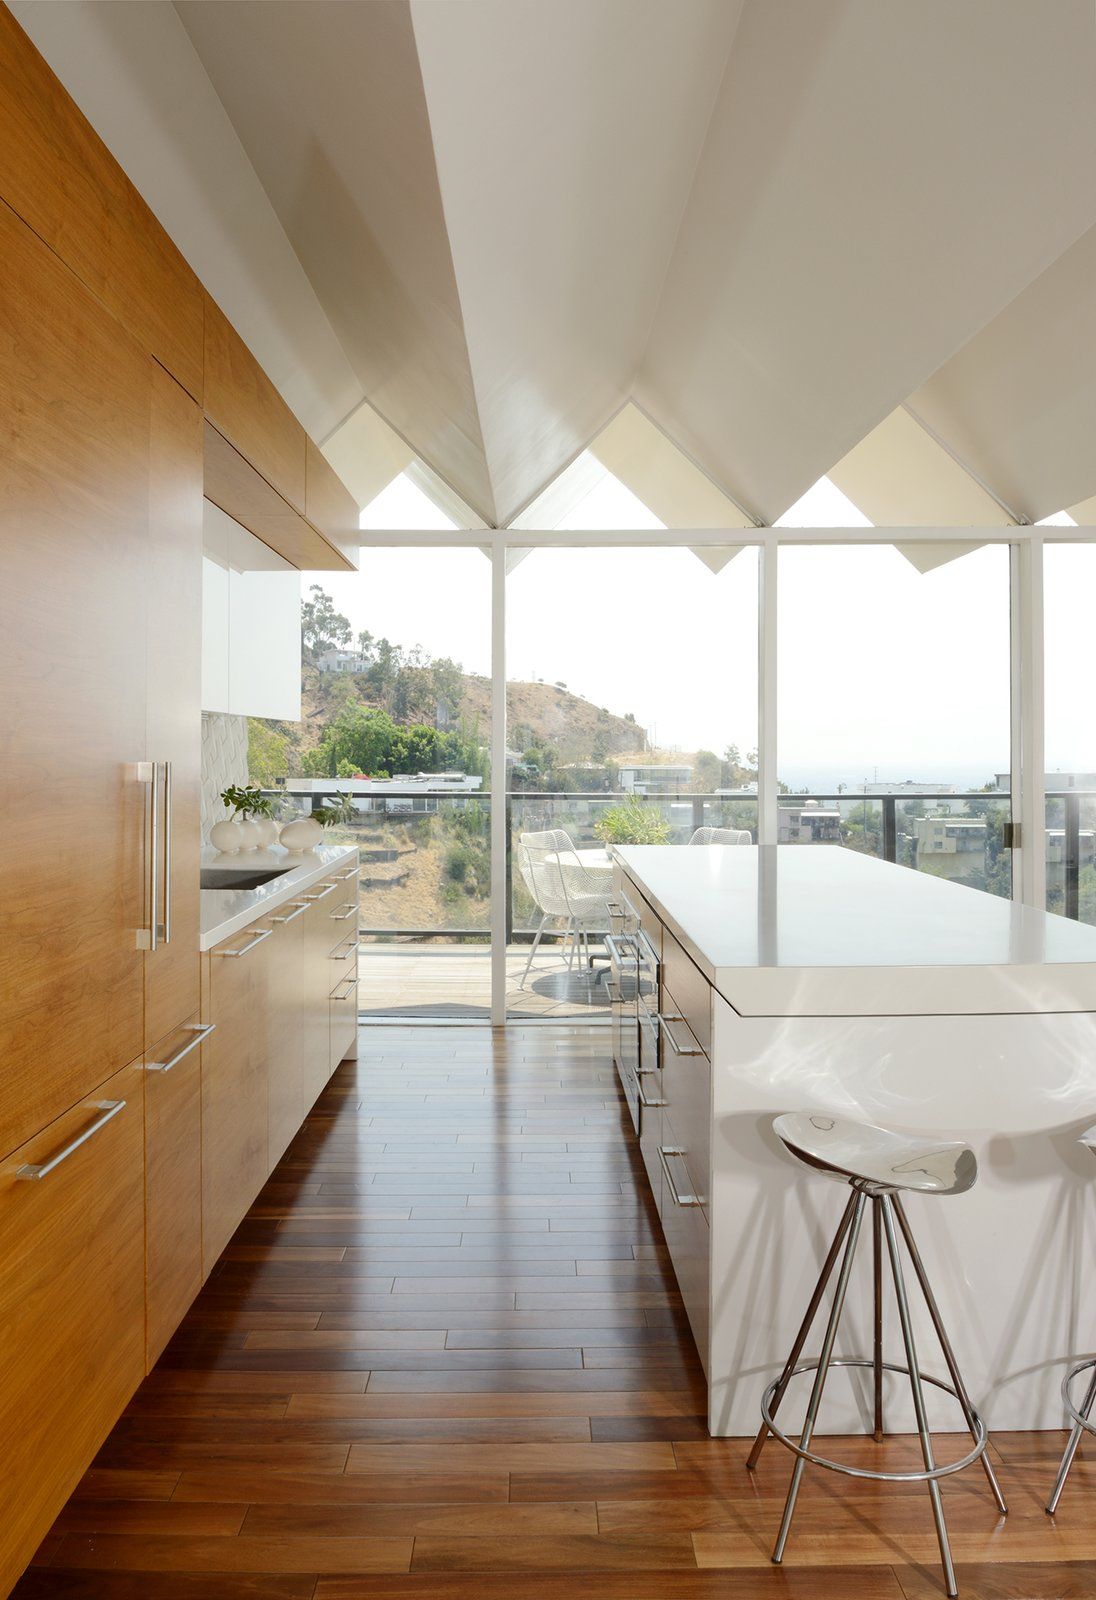 Kitchen, Medium Hardwood Floor, Engineered Quartz Counter, Refrigerator, White Cabinet, Undermount Sink, and Wood Cabinet The pleated roofline adds light and shadow to the bright and airy interiors.   Best Photos from Own This Unique Hollywood Hills Midcentury For $3.2M